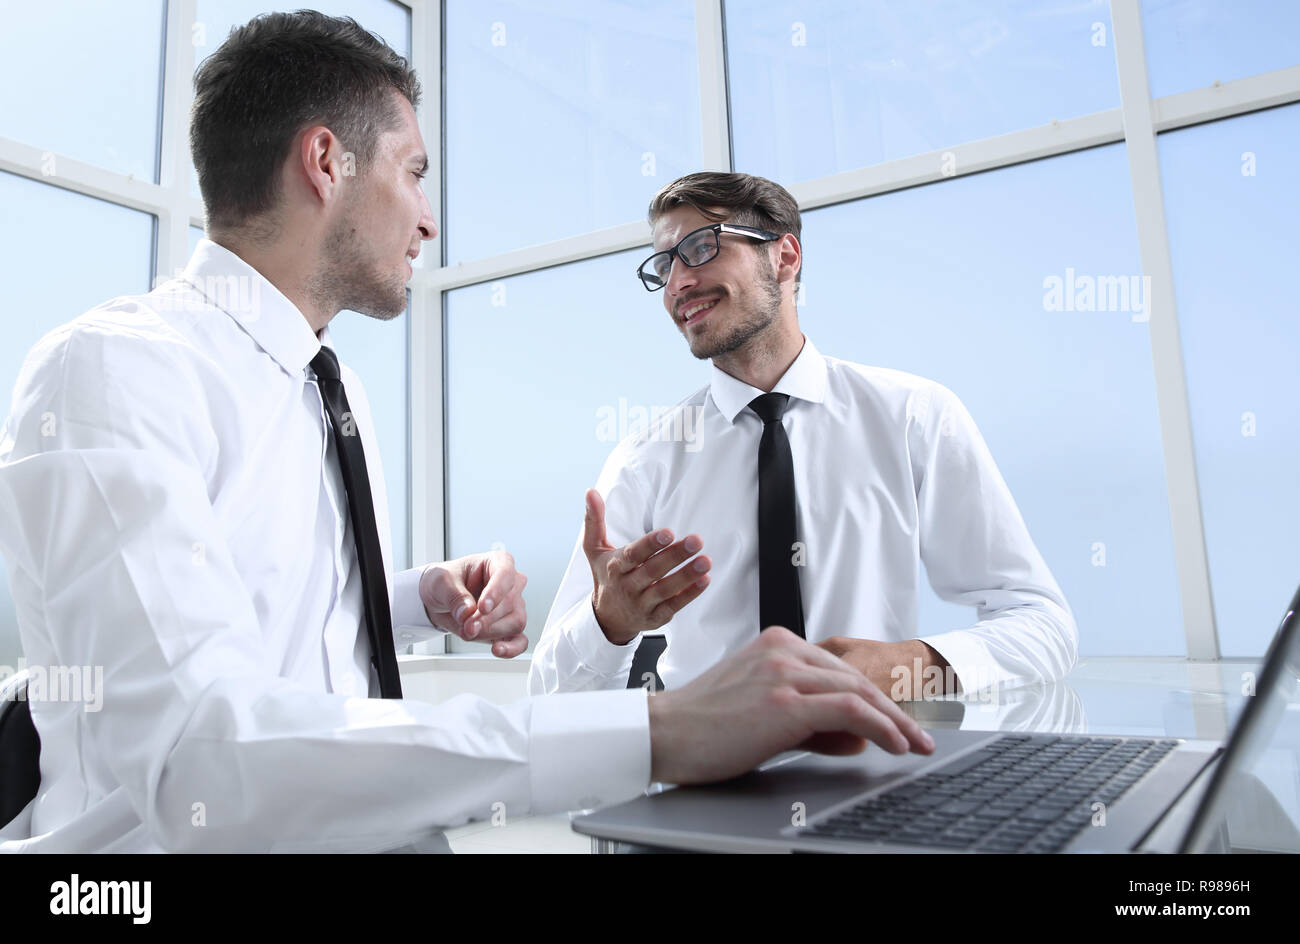 Business team discussing together plans - Stock Image